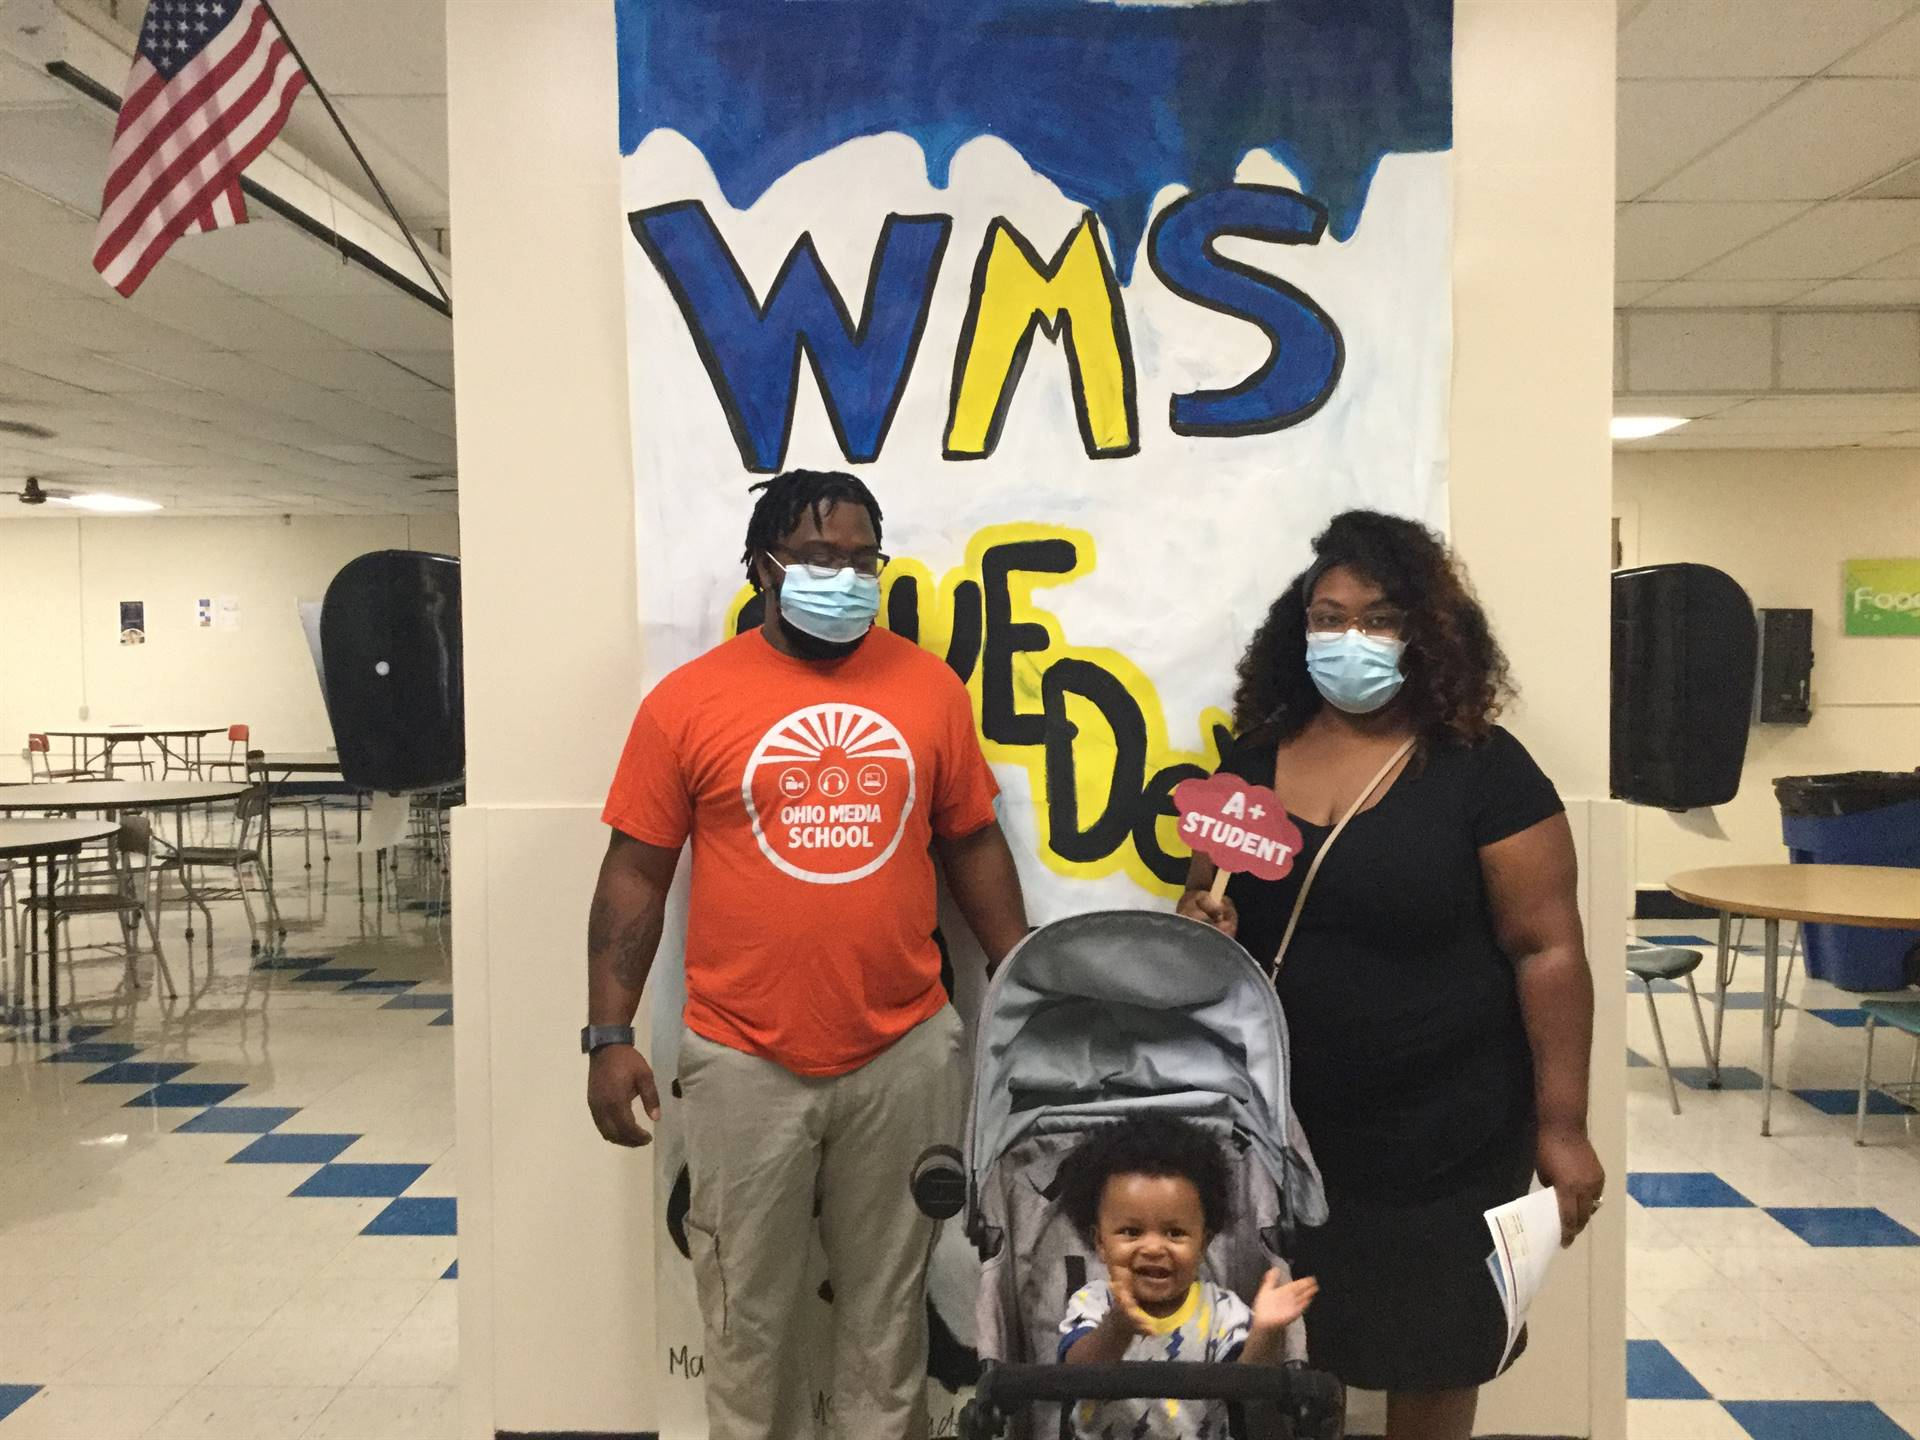 Two adults and a child in front of WMS Blue Devils 2021 sign